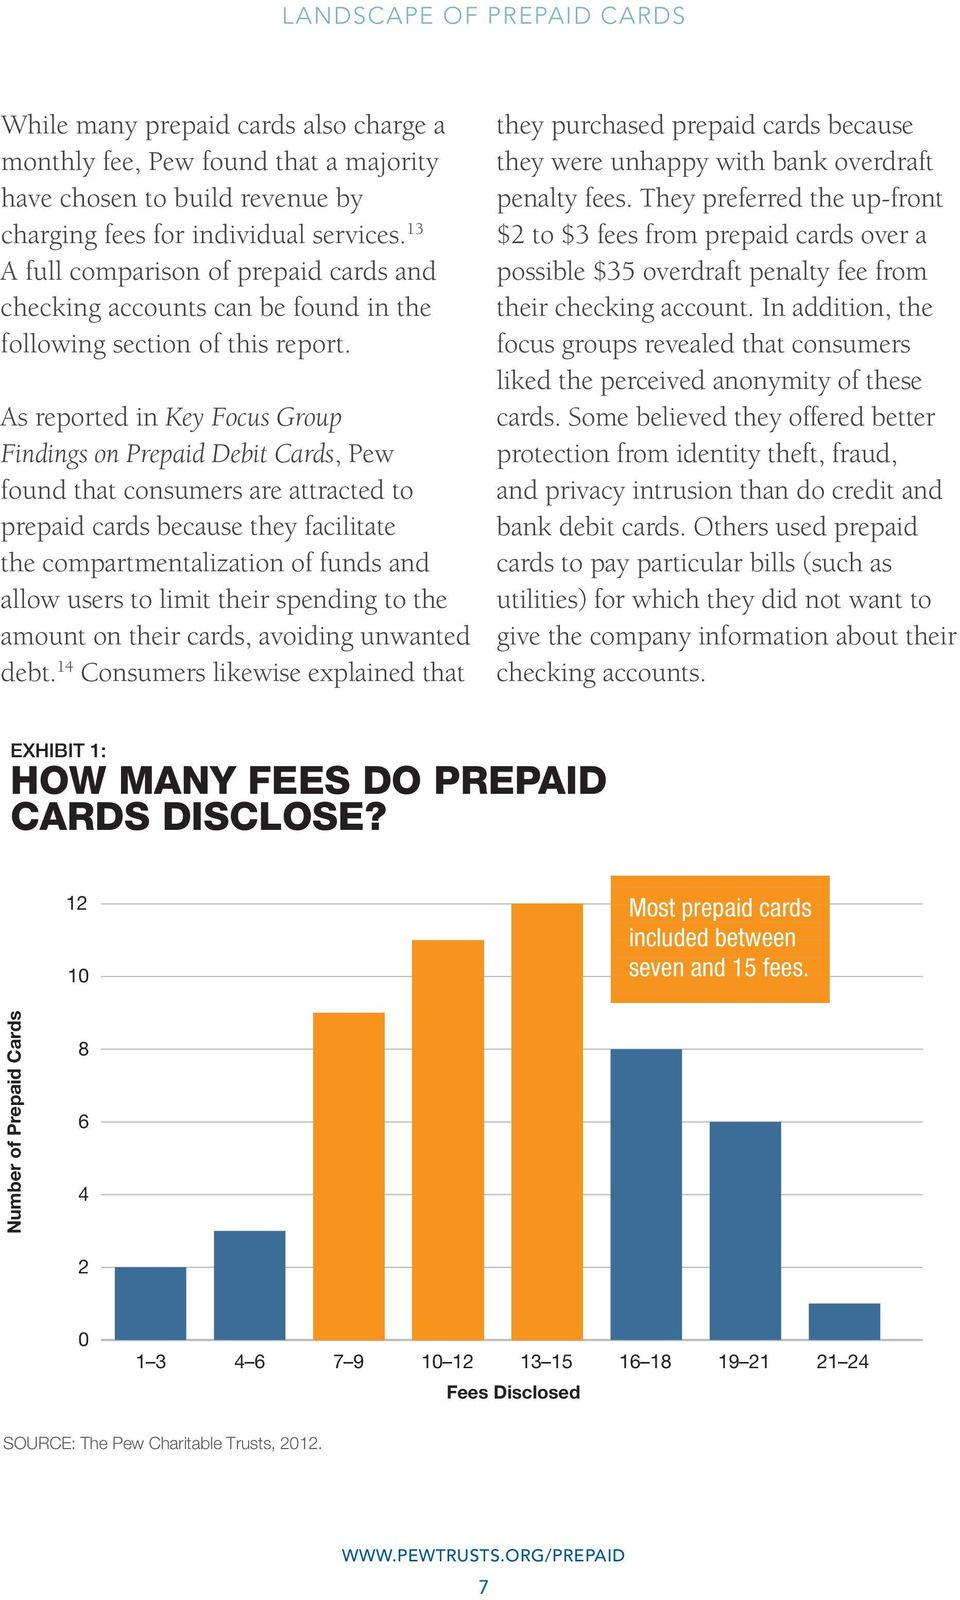 As reported in Key Focus Group Findings on Prepaid Debit Cards, Pew found that consumers are attracted to prepaid cards because they facilitate the compartmentalization of funds and allow users to